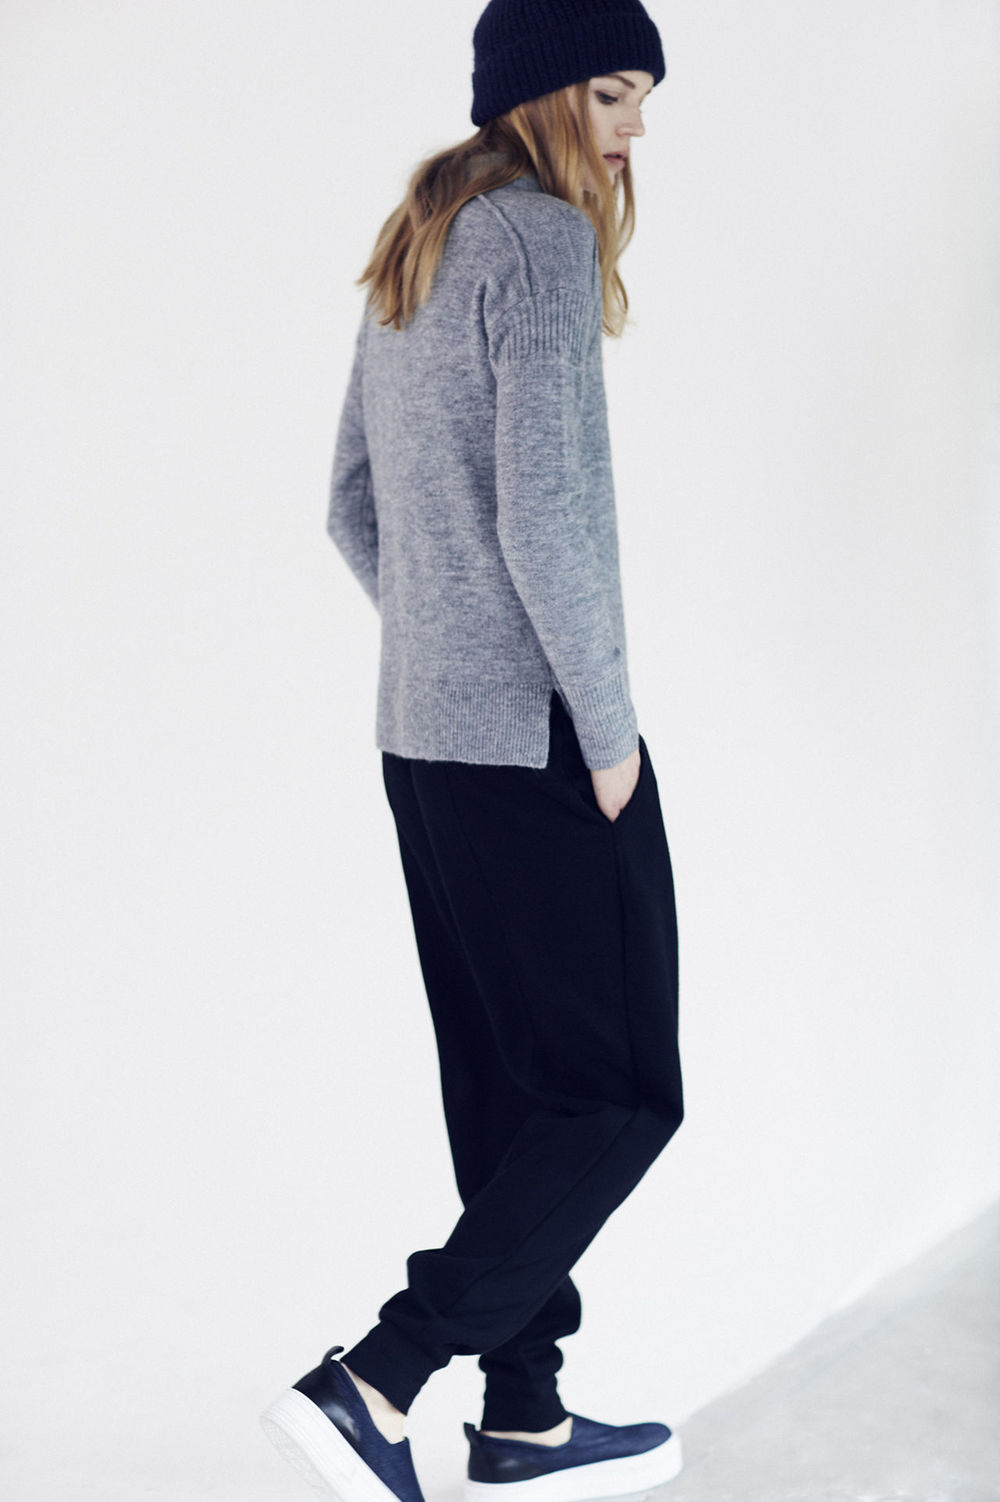 whistles_knitwear_aw14_13_004fe780500784.jpg